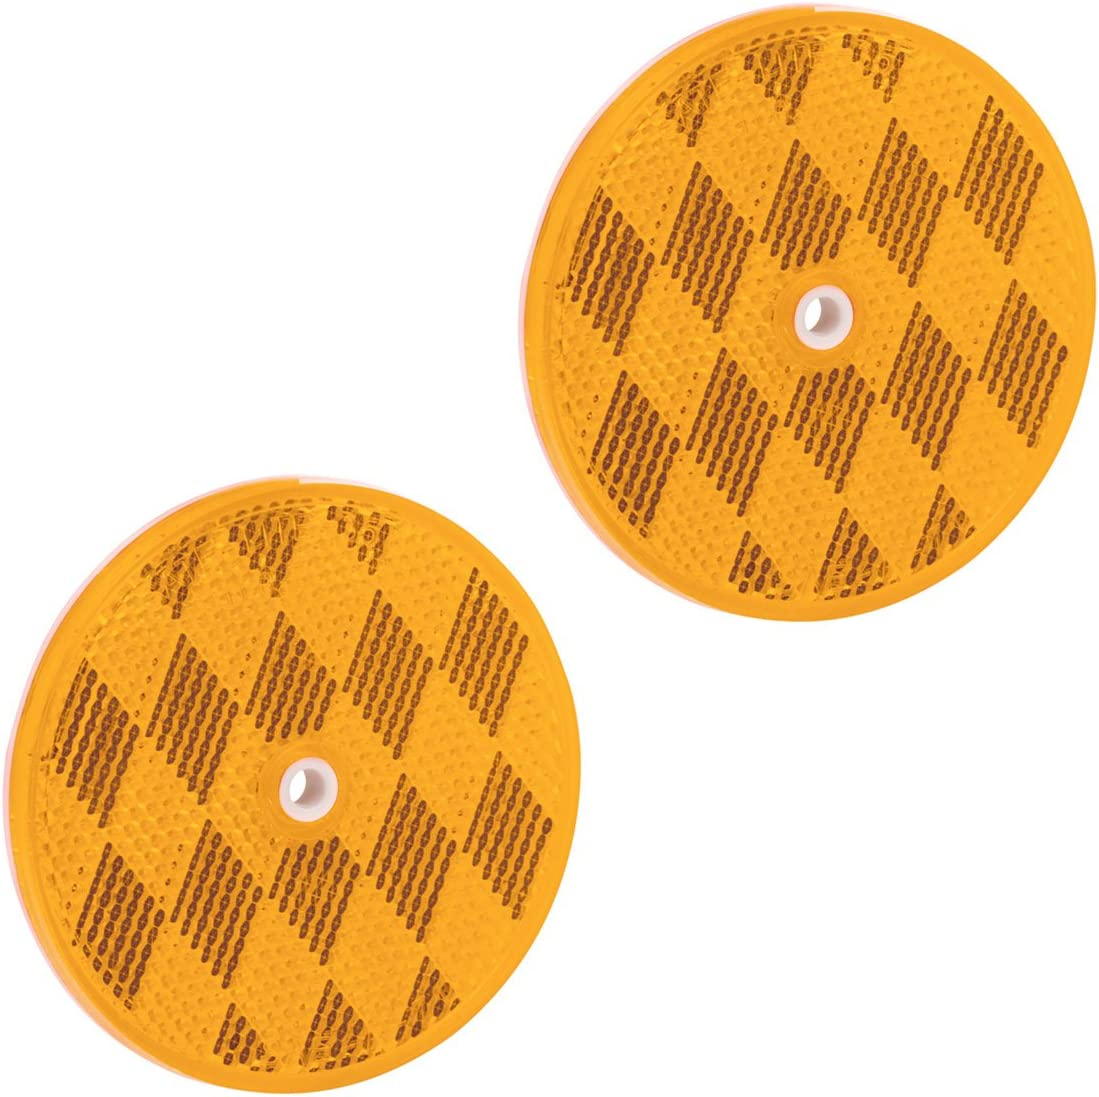 Bargman 74-71-170 Class A 2-3//16 Round Red Reflector with Center Mounting Hole 2 Pack